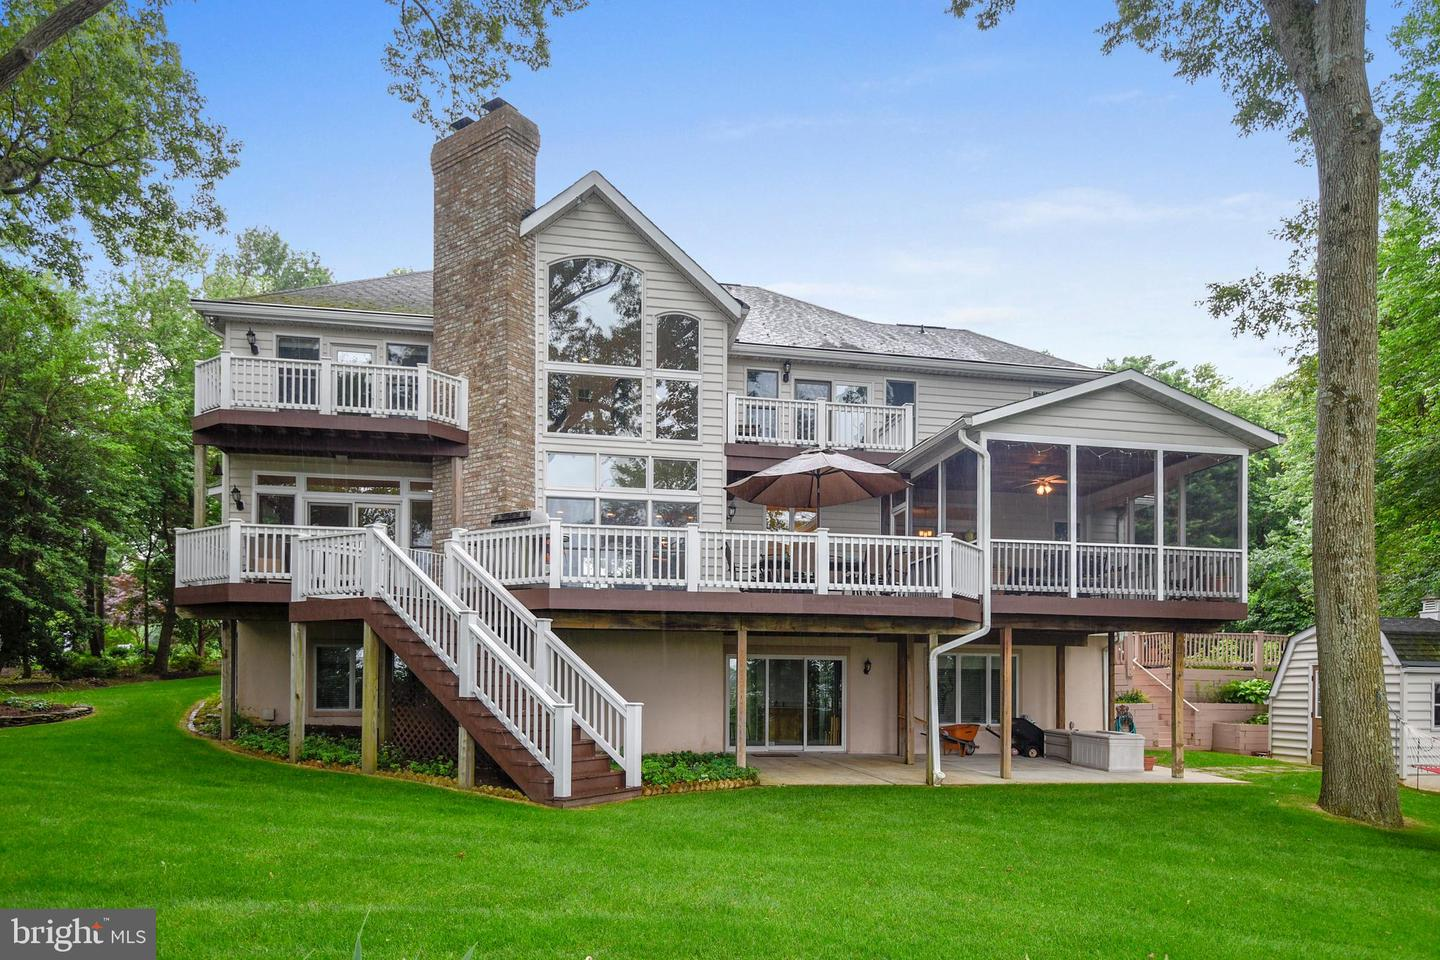 Single Family Home for Sale at 1200 Winsail Court 1200 Winsail Court Pasadena, Maryland 21122 United States